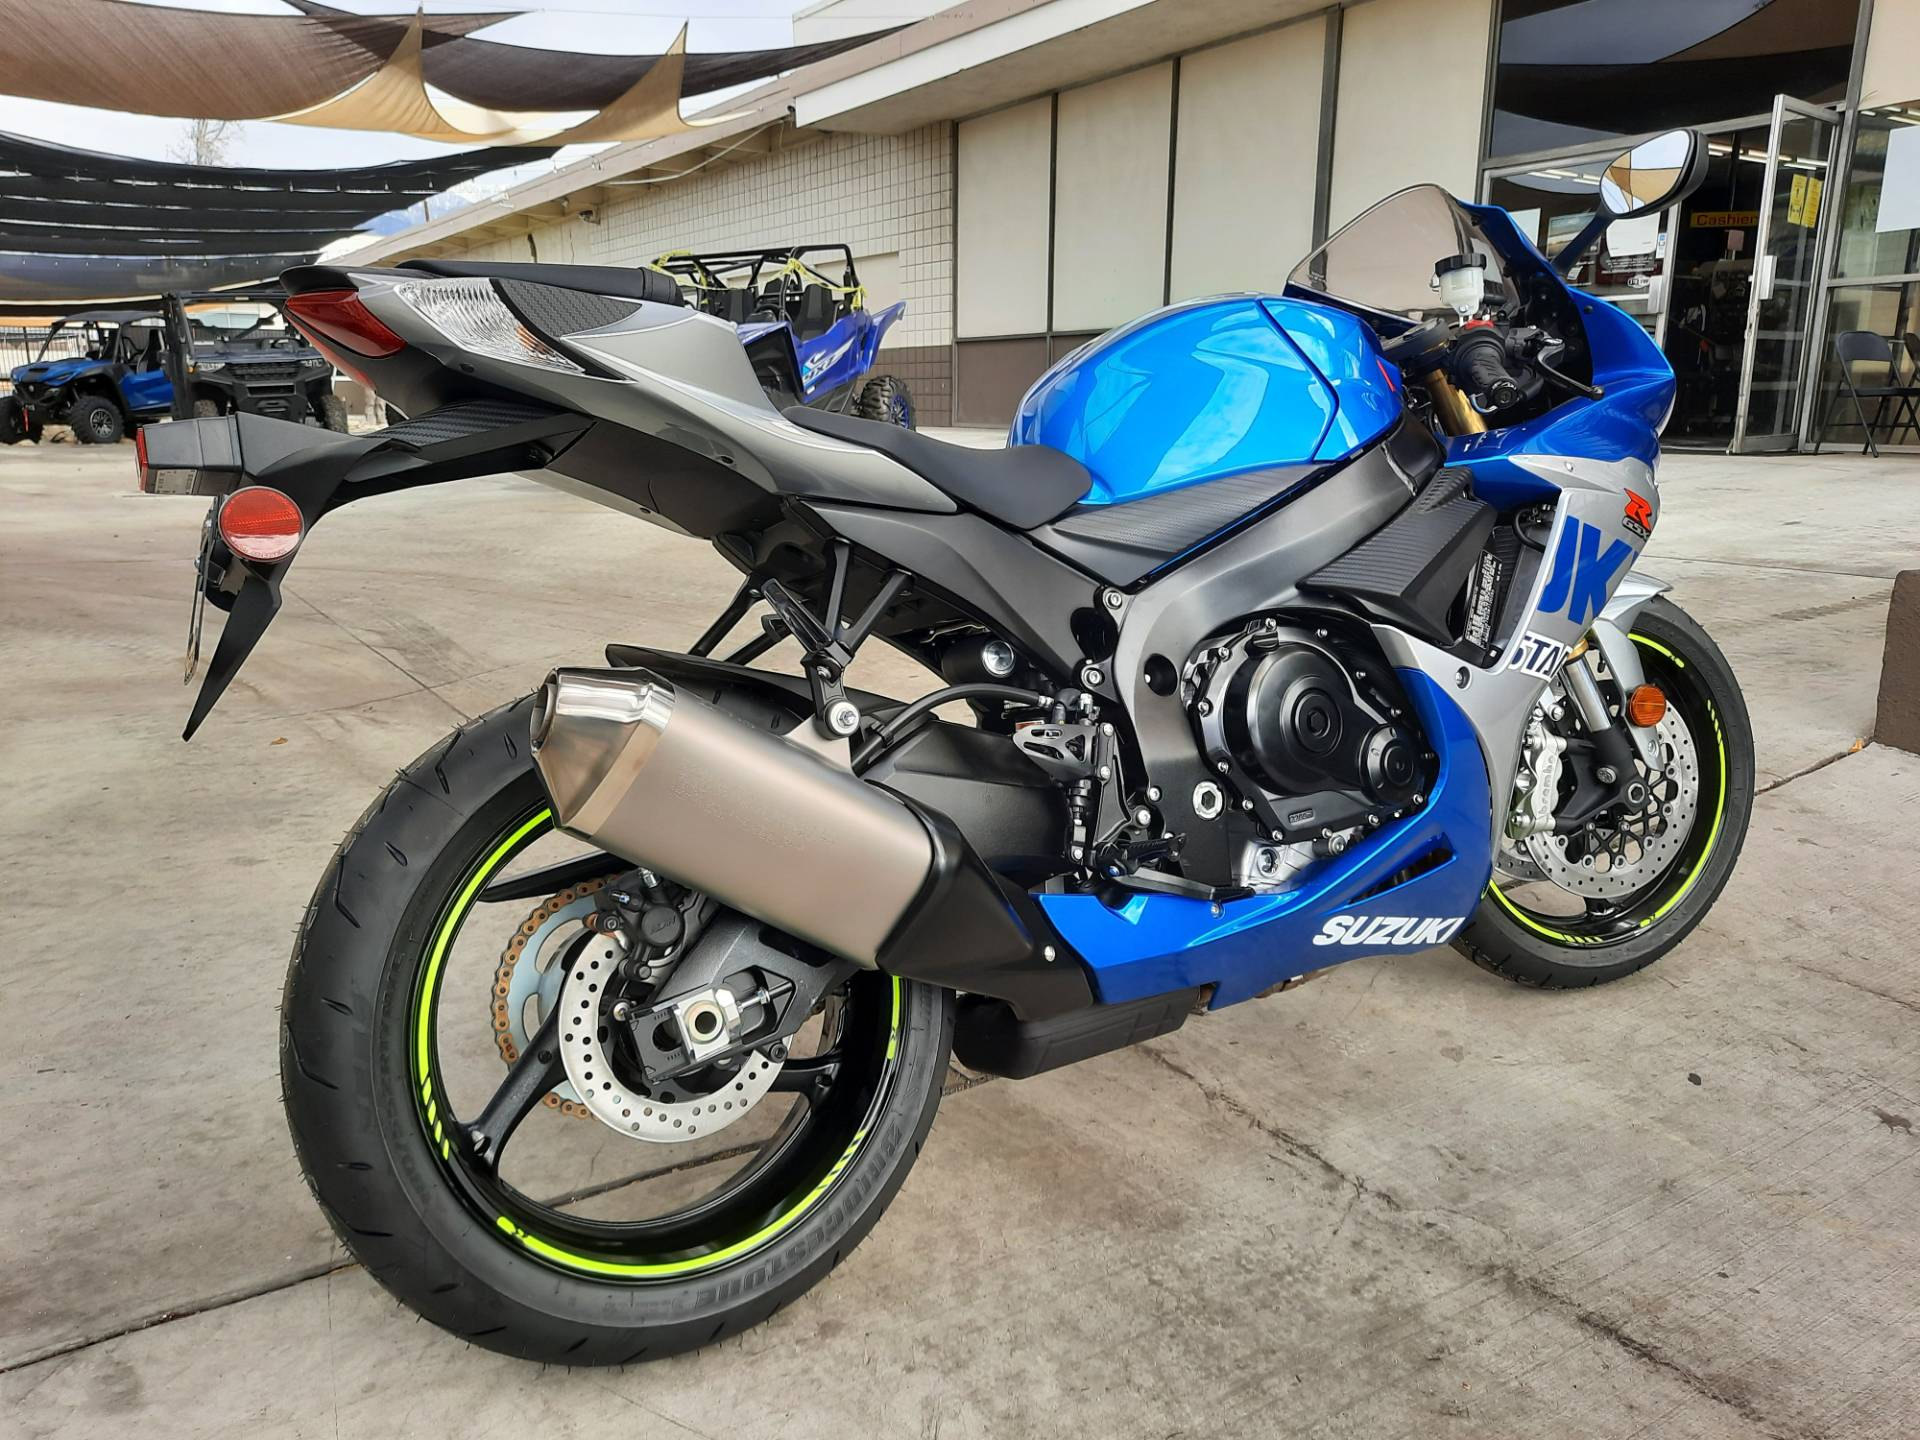 2021 Suzuki GSX-R750 100th Anniversary Edition in Ontario, California - Photo 10